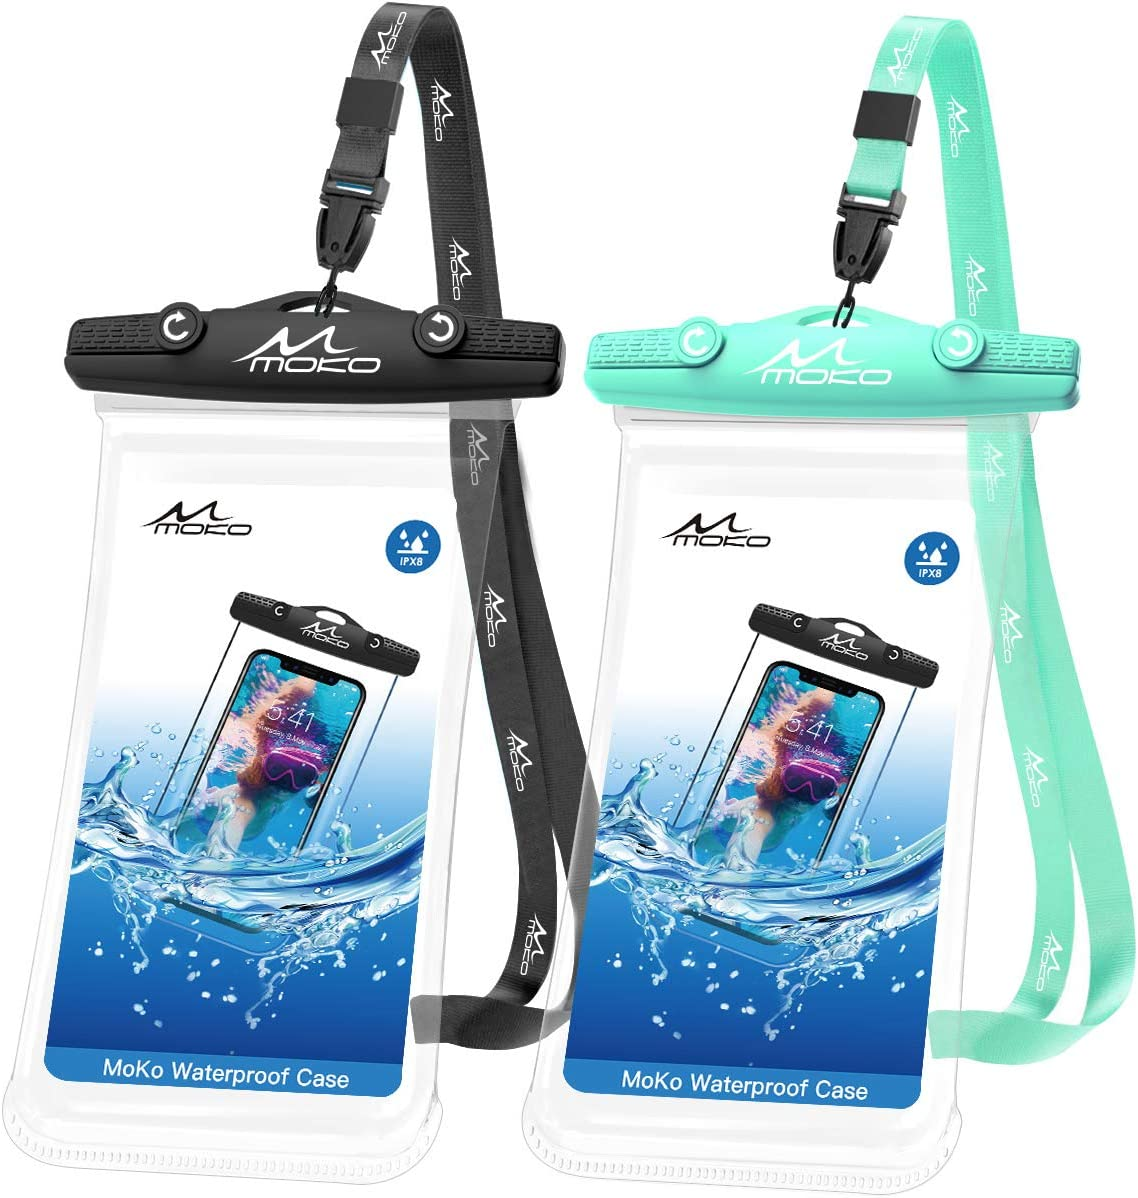 MoKo Waterproof Phone Case, [2 Pack] Underwater Phone Pouch Dry Bag with Lanyard Compatible with iPhone 12 Mini/12/12 Pro, iPhone 11/11 Pro/11 Pro Max, X/Xs/Xr/Xs Max/8/7, Samsung Note 10, S21/S10